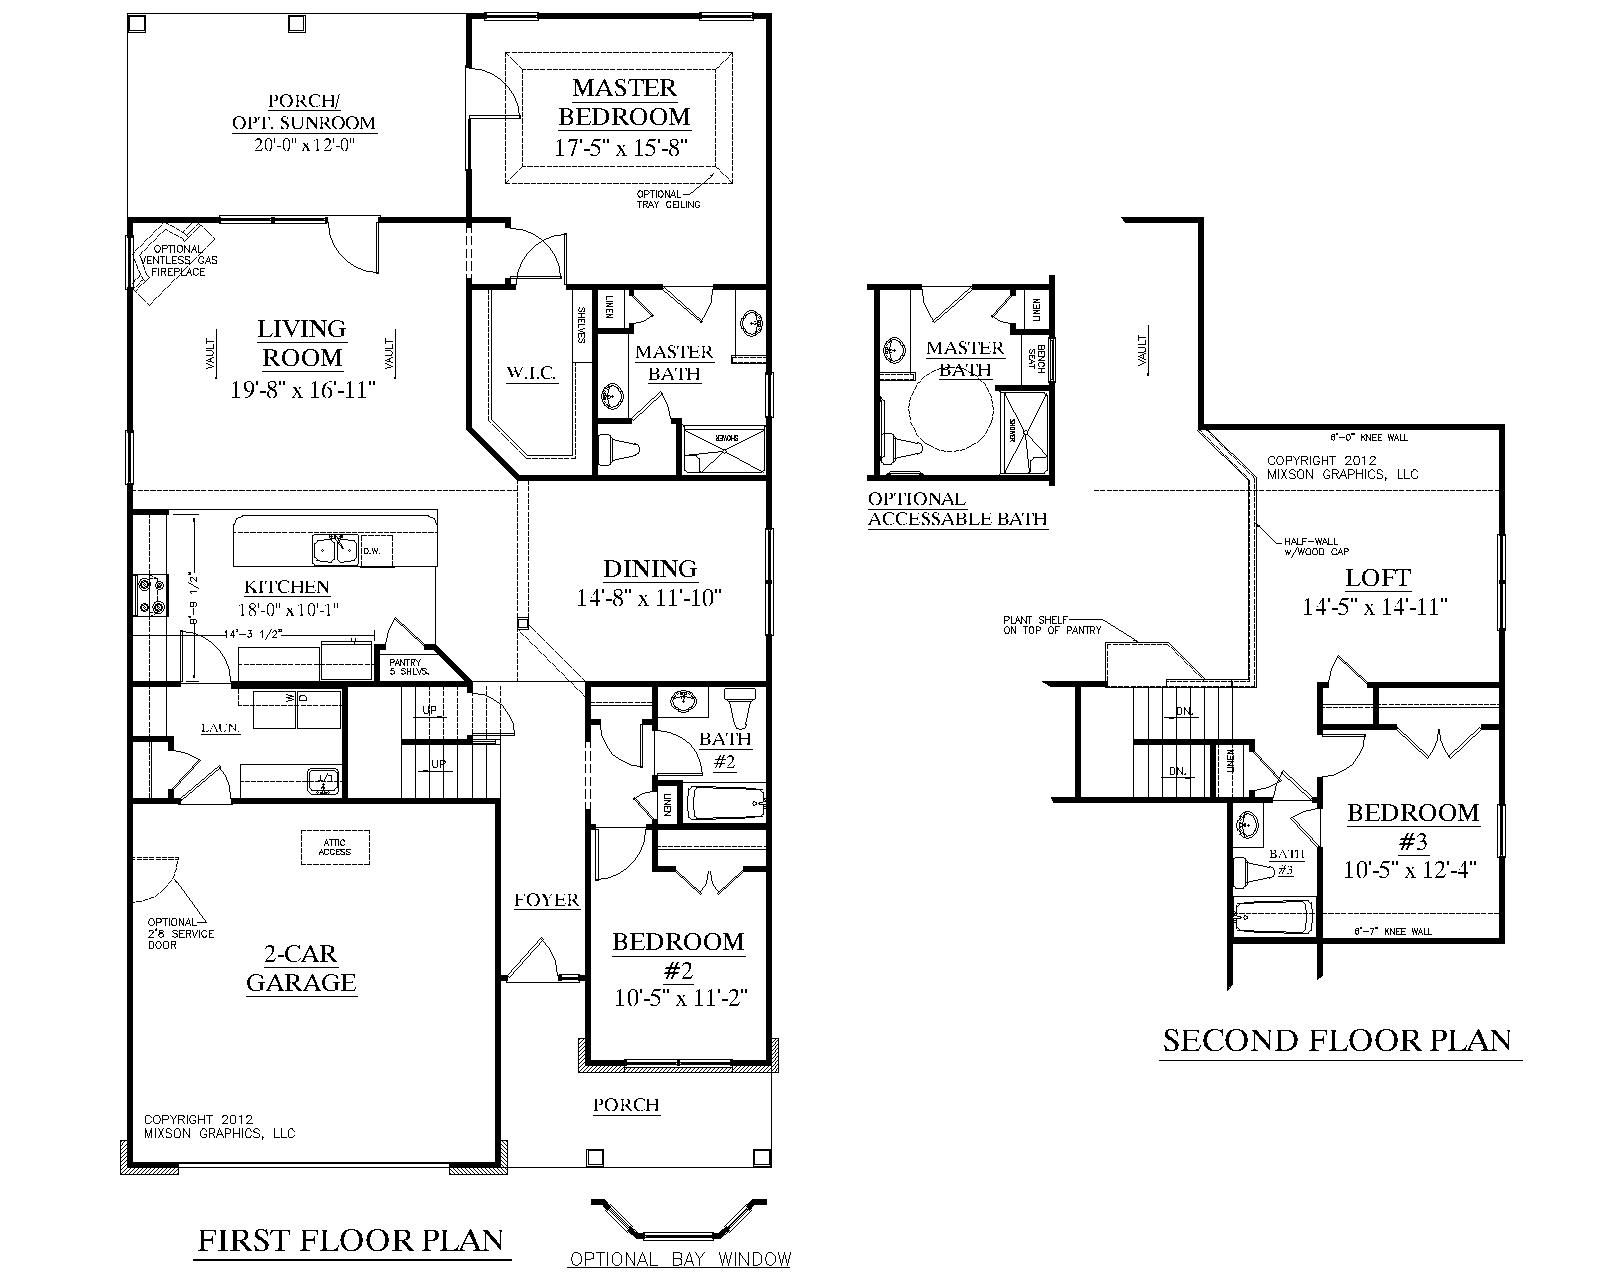 House plan 2224 kingstree floor plan traditional 1 1 2 for Living room floor plan